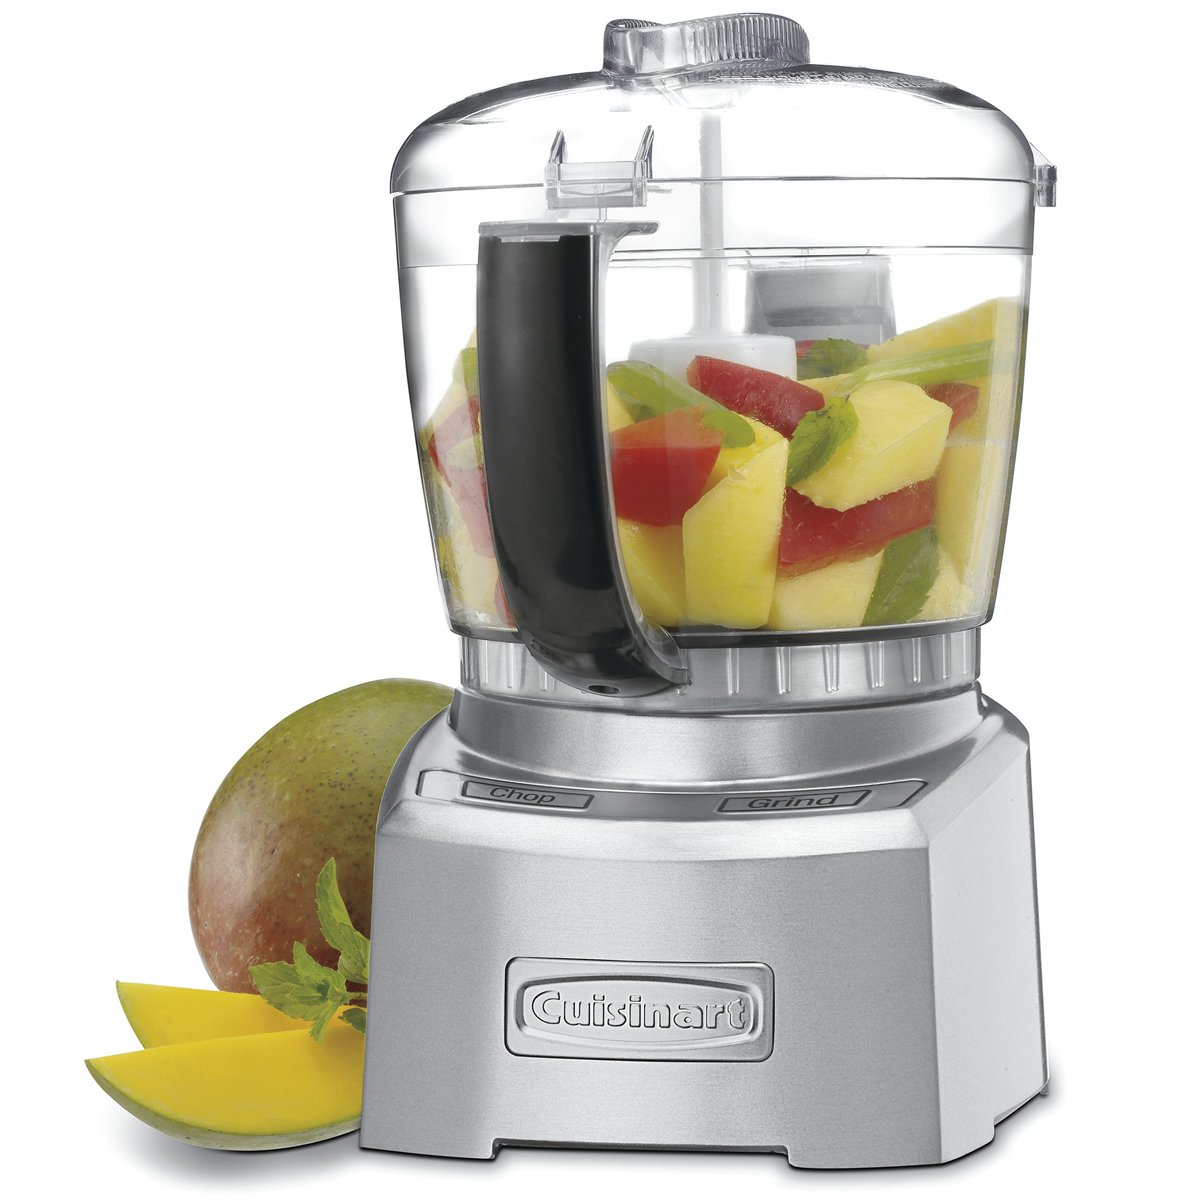 Cuisinart 4 Cup Food Chopper - Die Cast